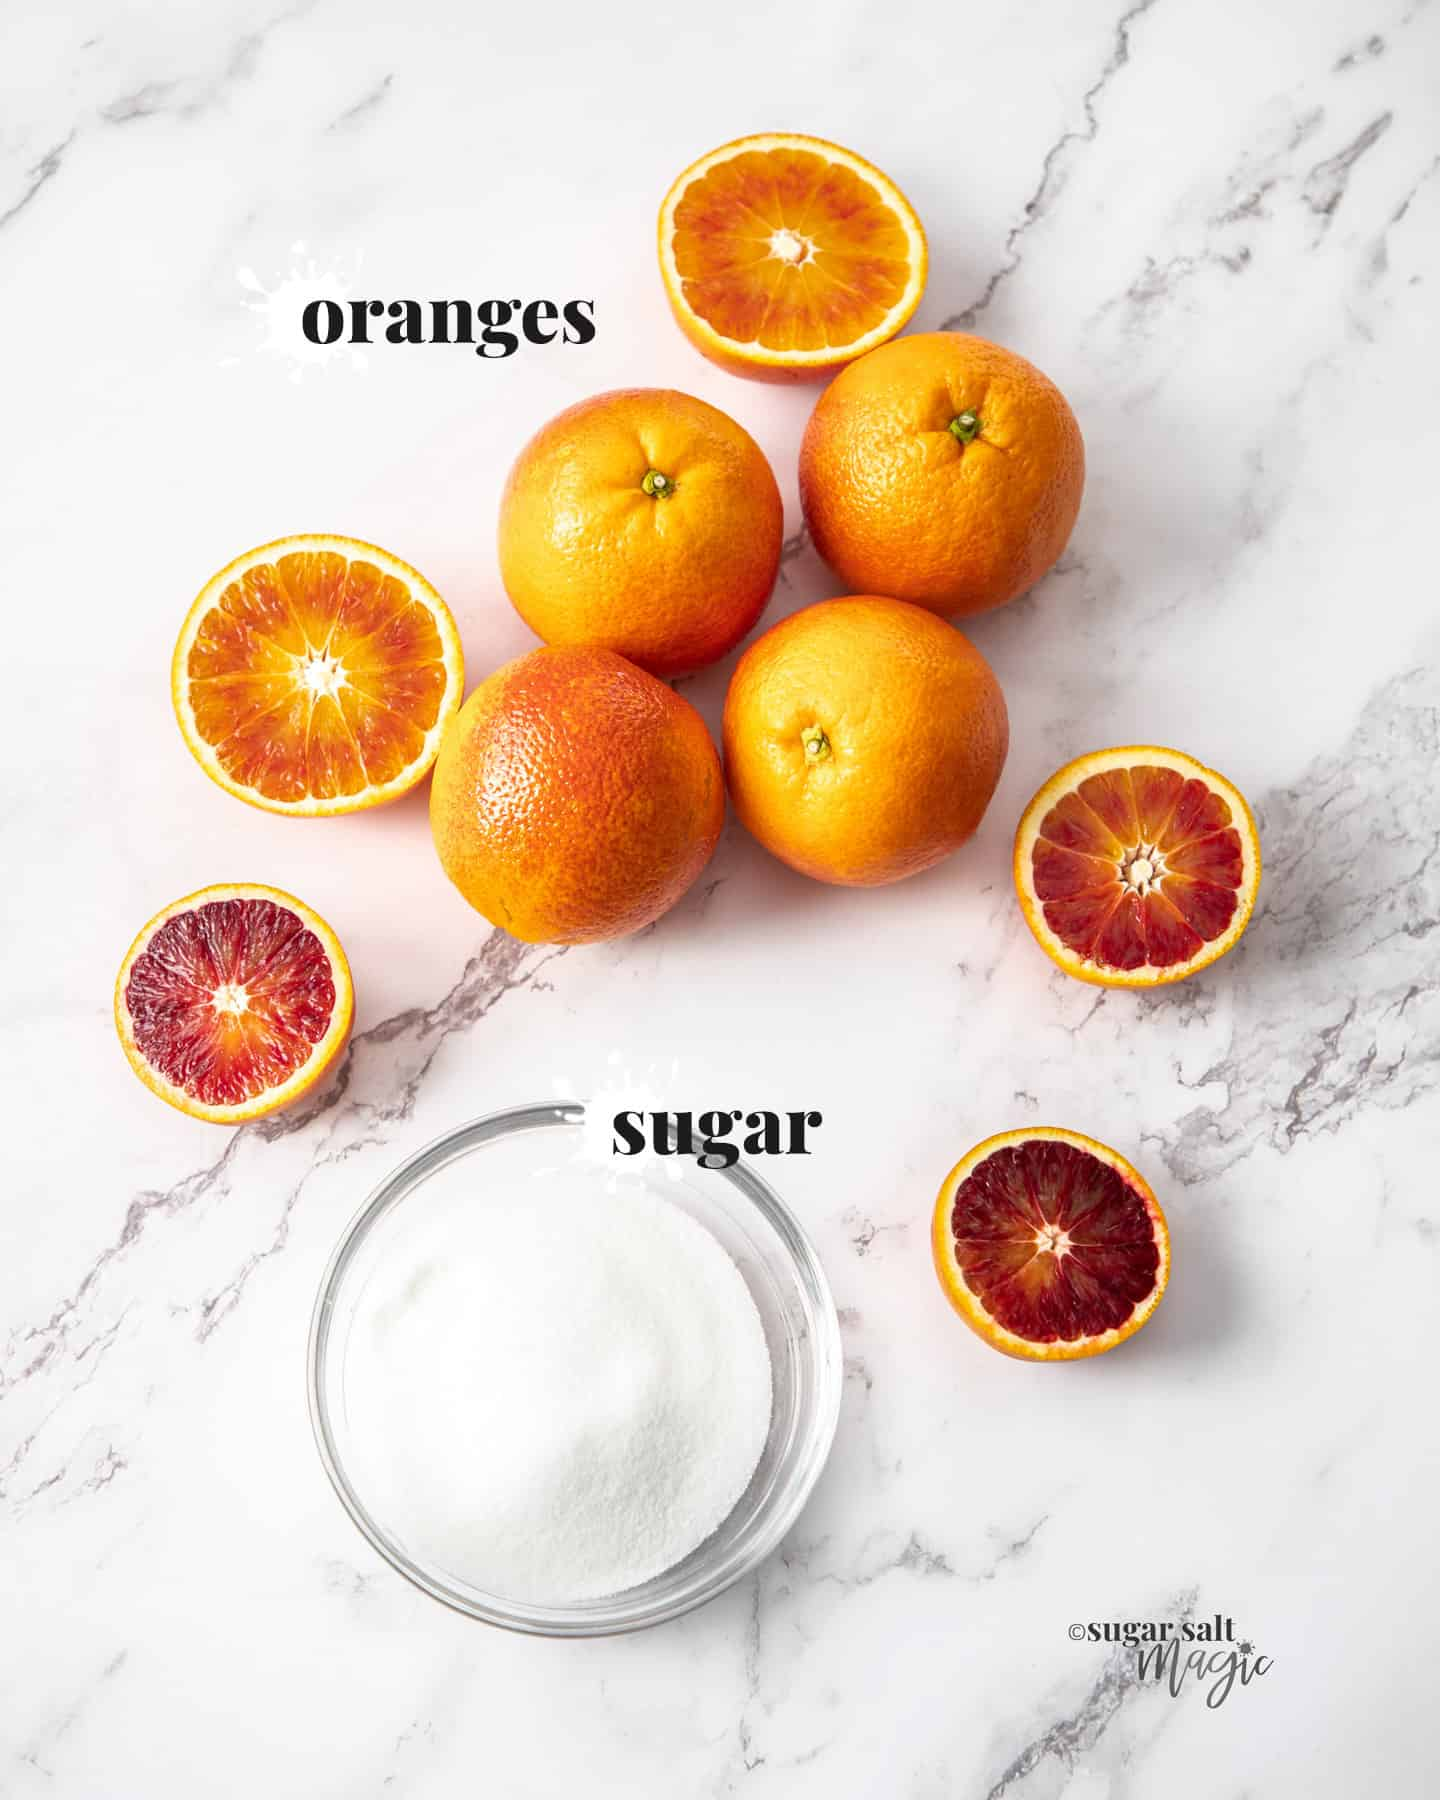 Oranges and sugar on a marble benchtop.